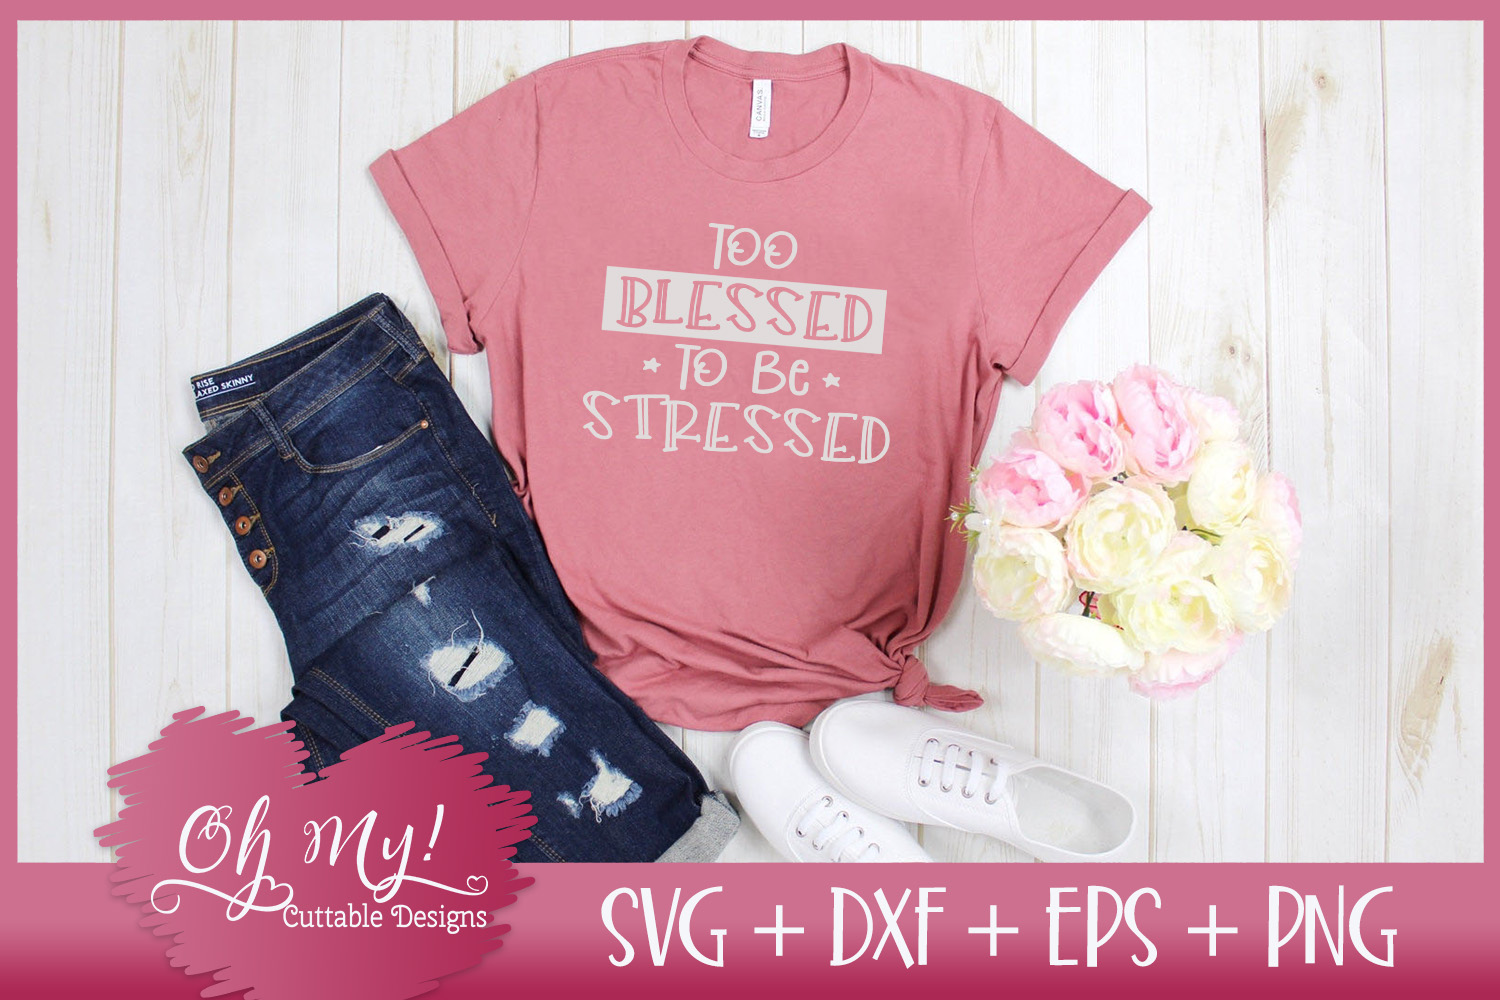 Too Blessed To Be Stressed - SVG DXF EPS PNG Cutting File example image 2